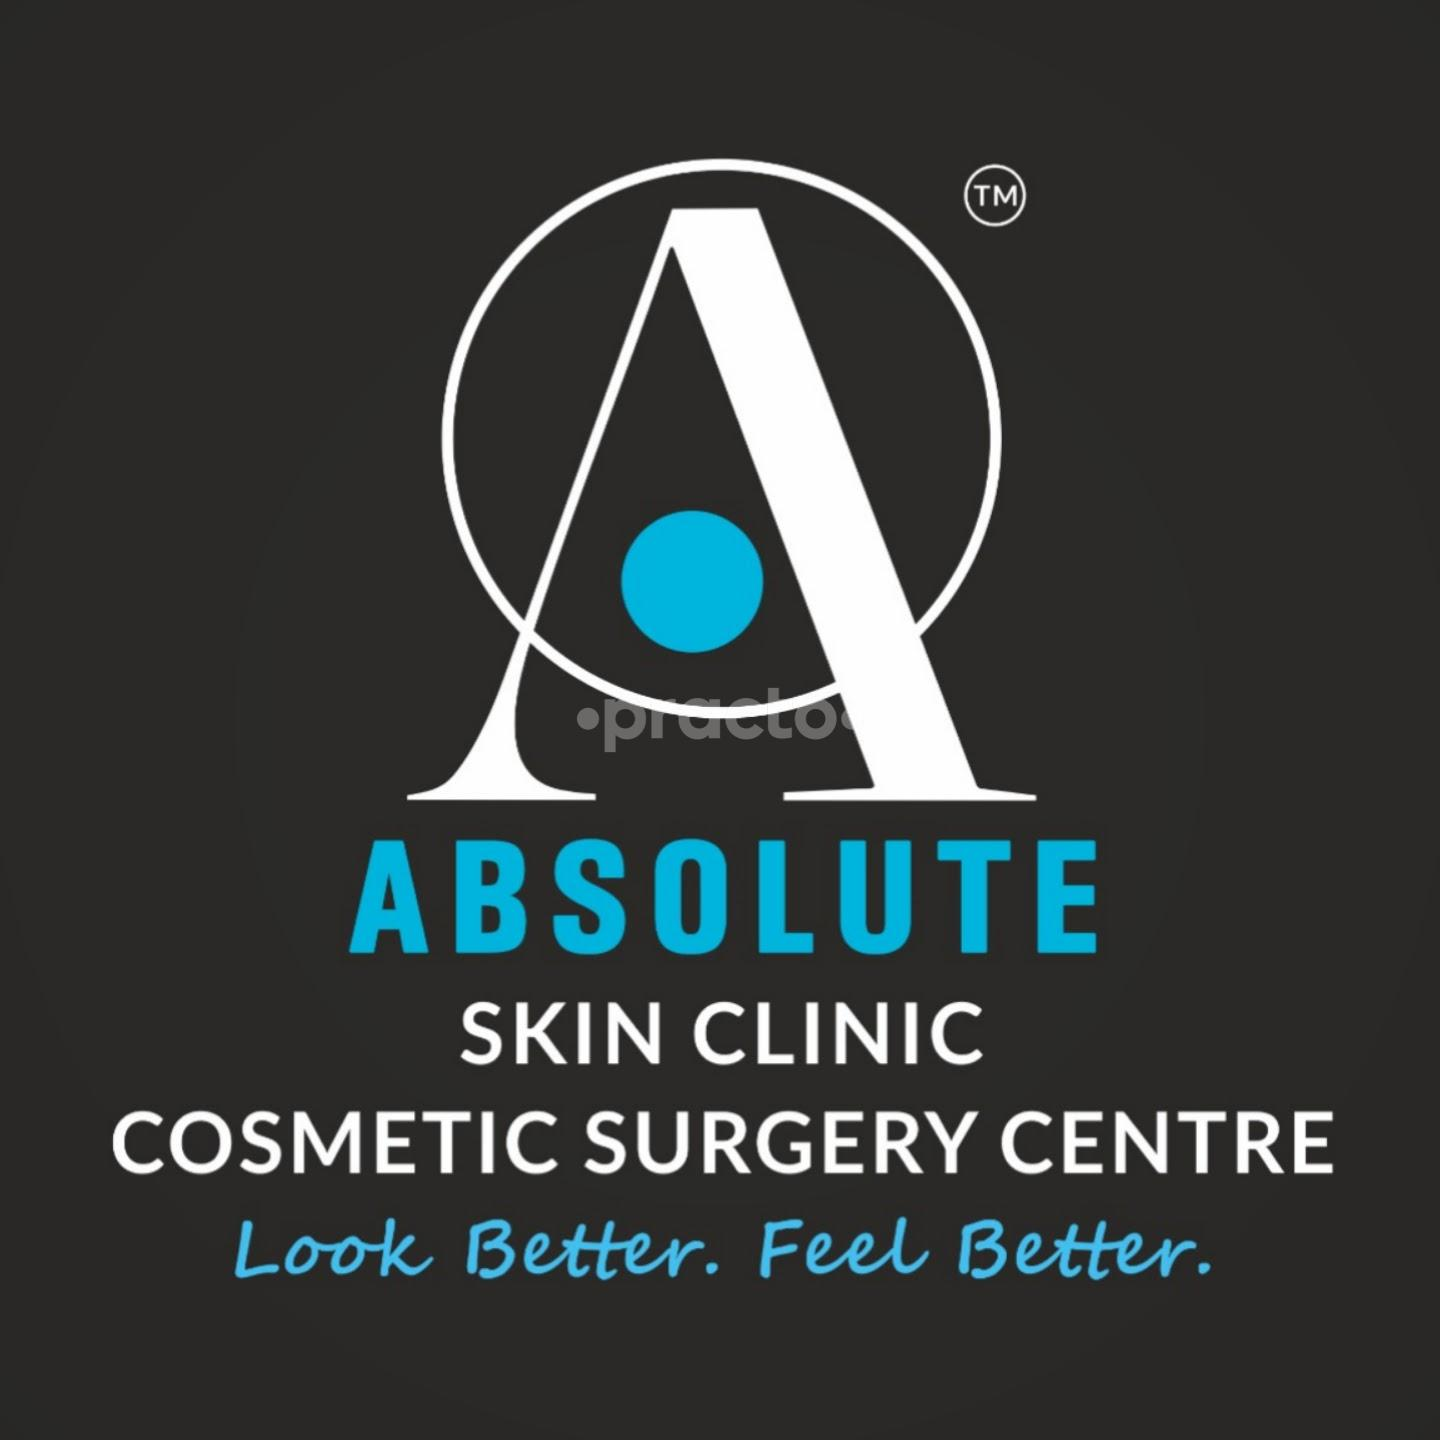 Absolute Skin Clinic & Cosmetic Surgery Centre